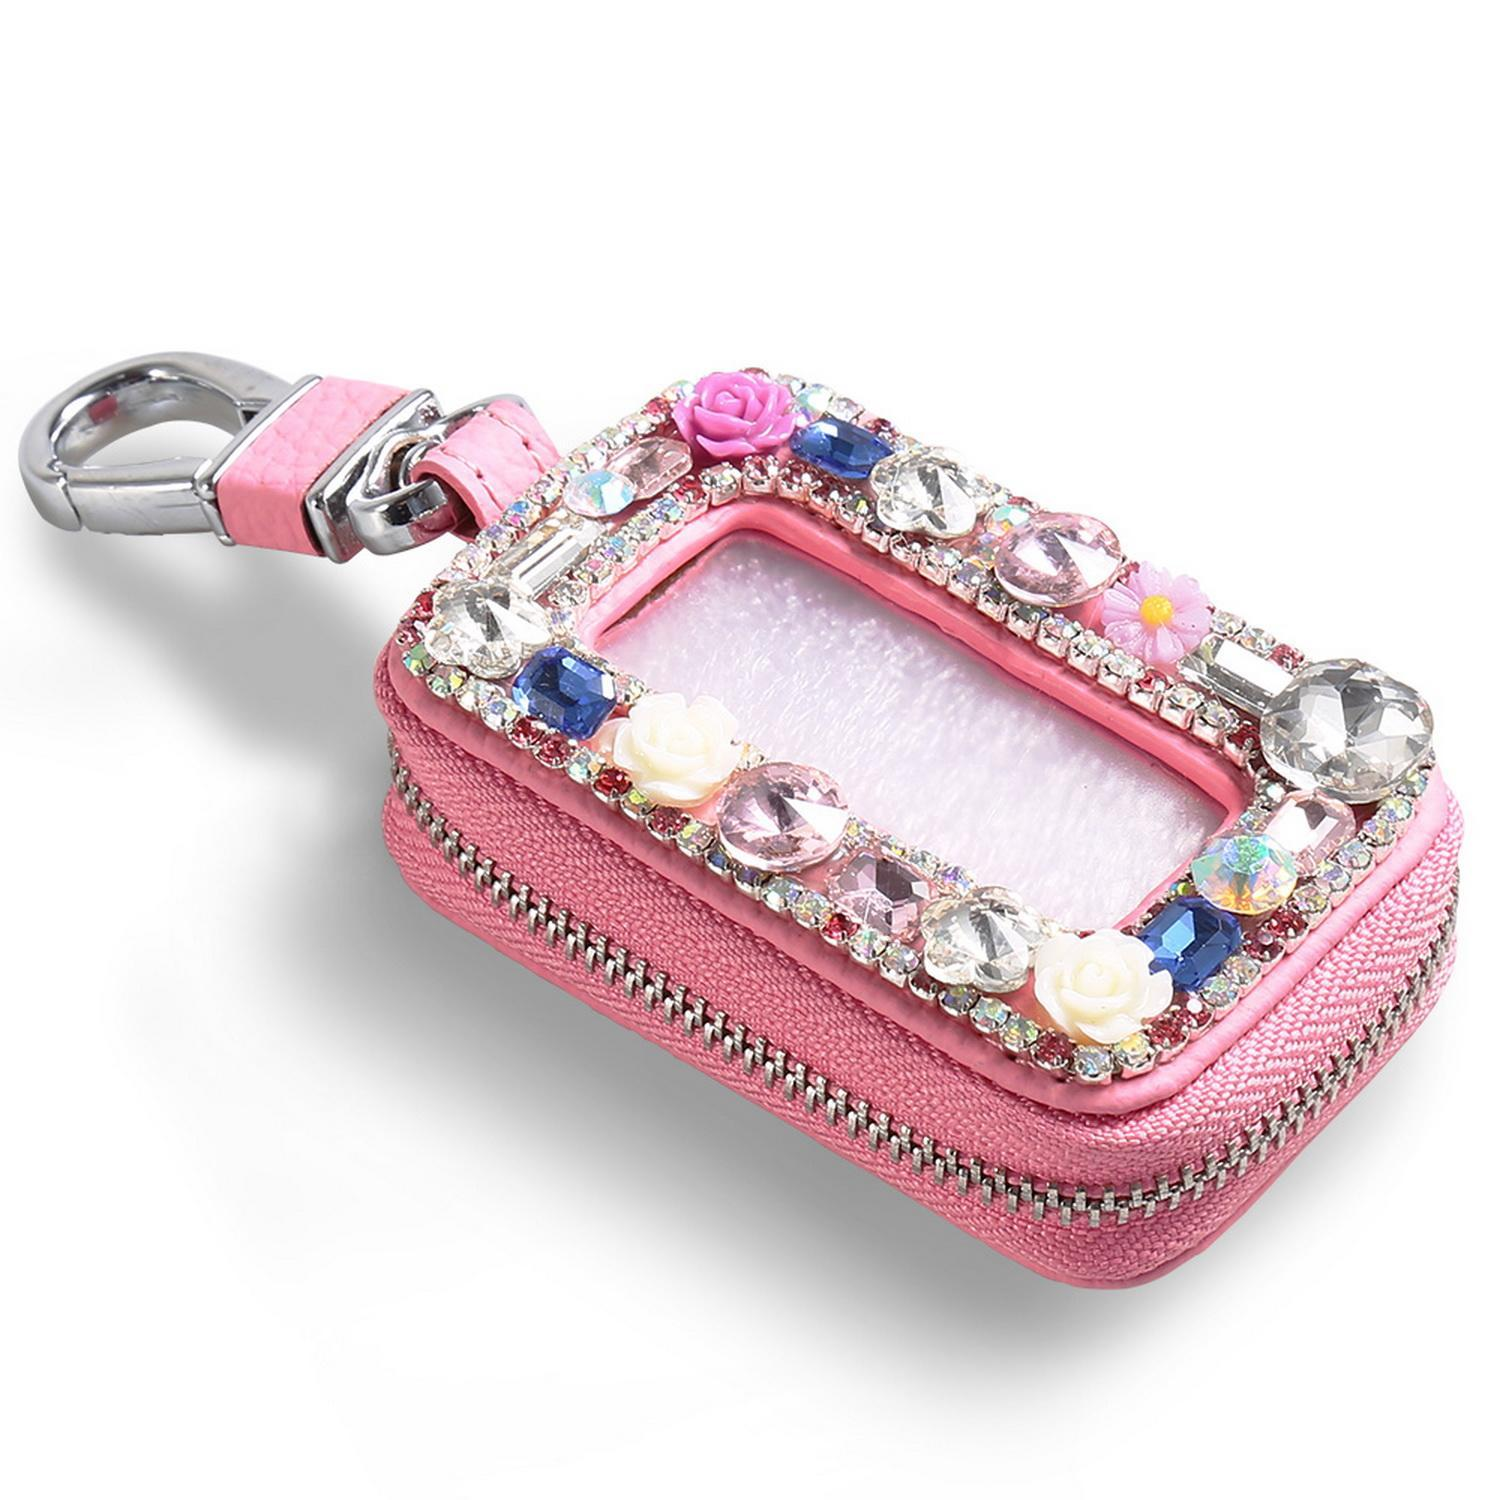 Car Key Holder Black Car Key Case Chain key Cover Coin Holder Keyring Wallet Zipper Rhinestone Bag MAEHE